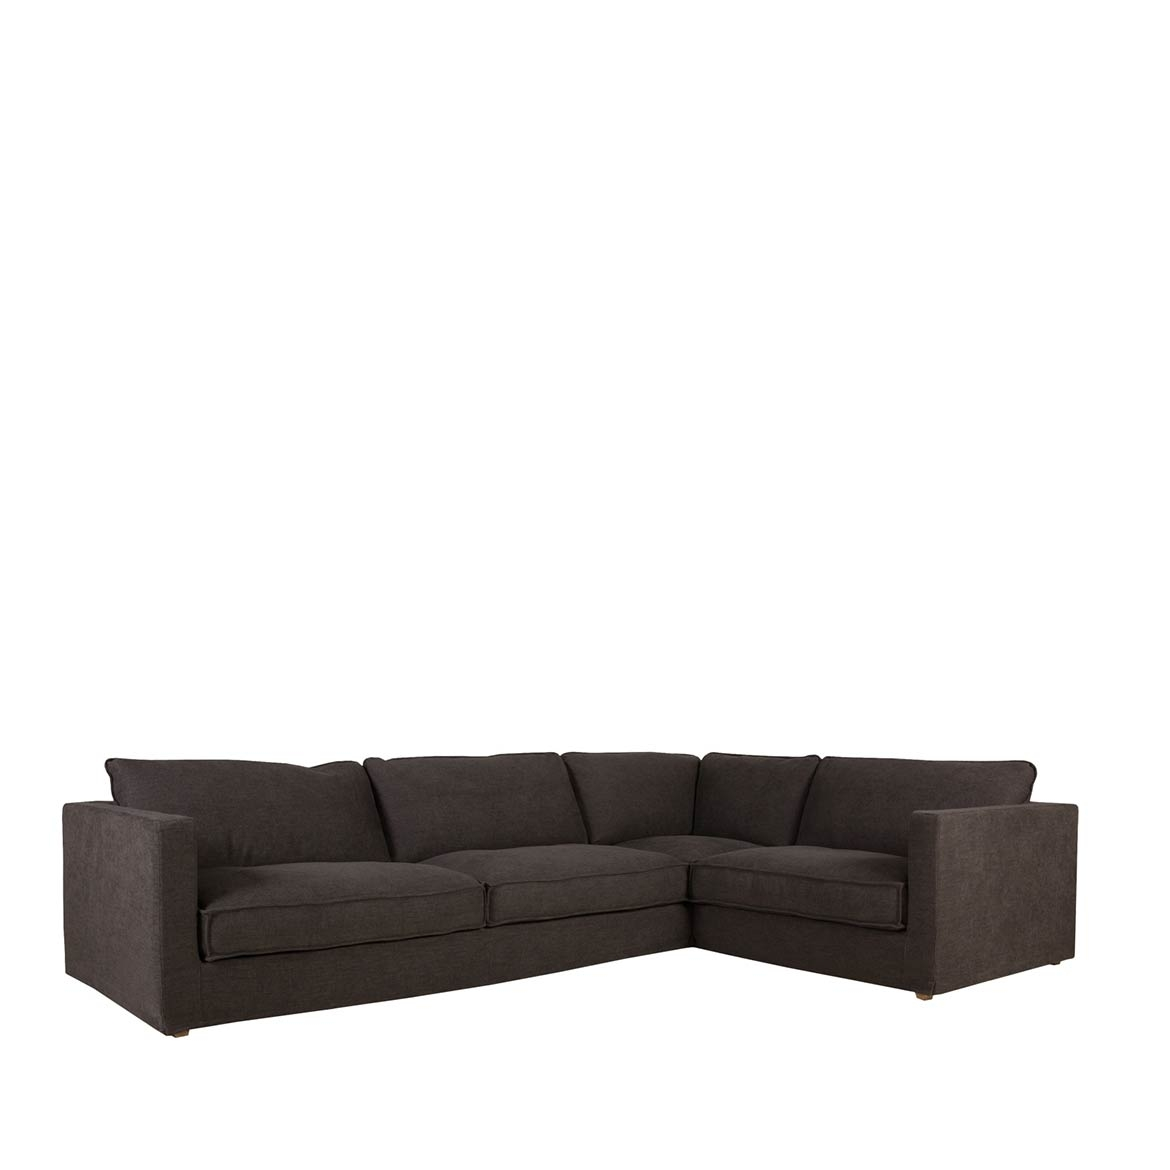 Salci corner sofa - set 7